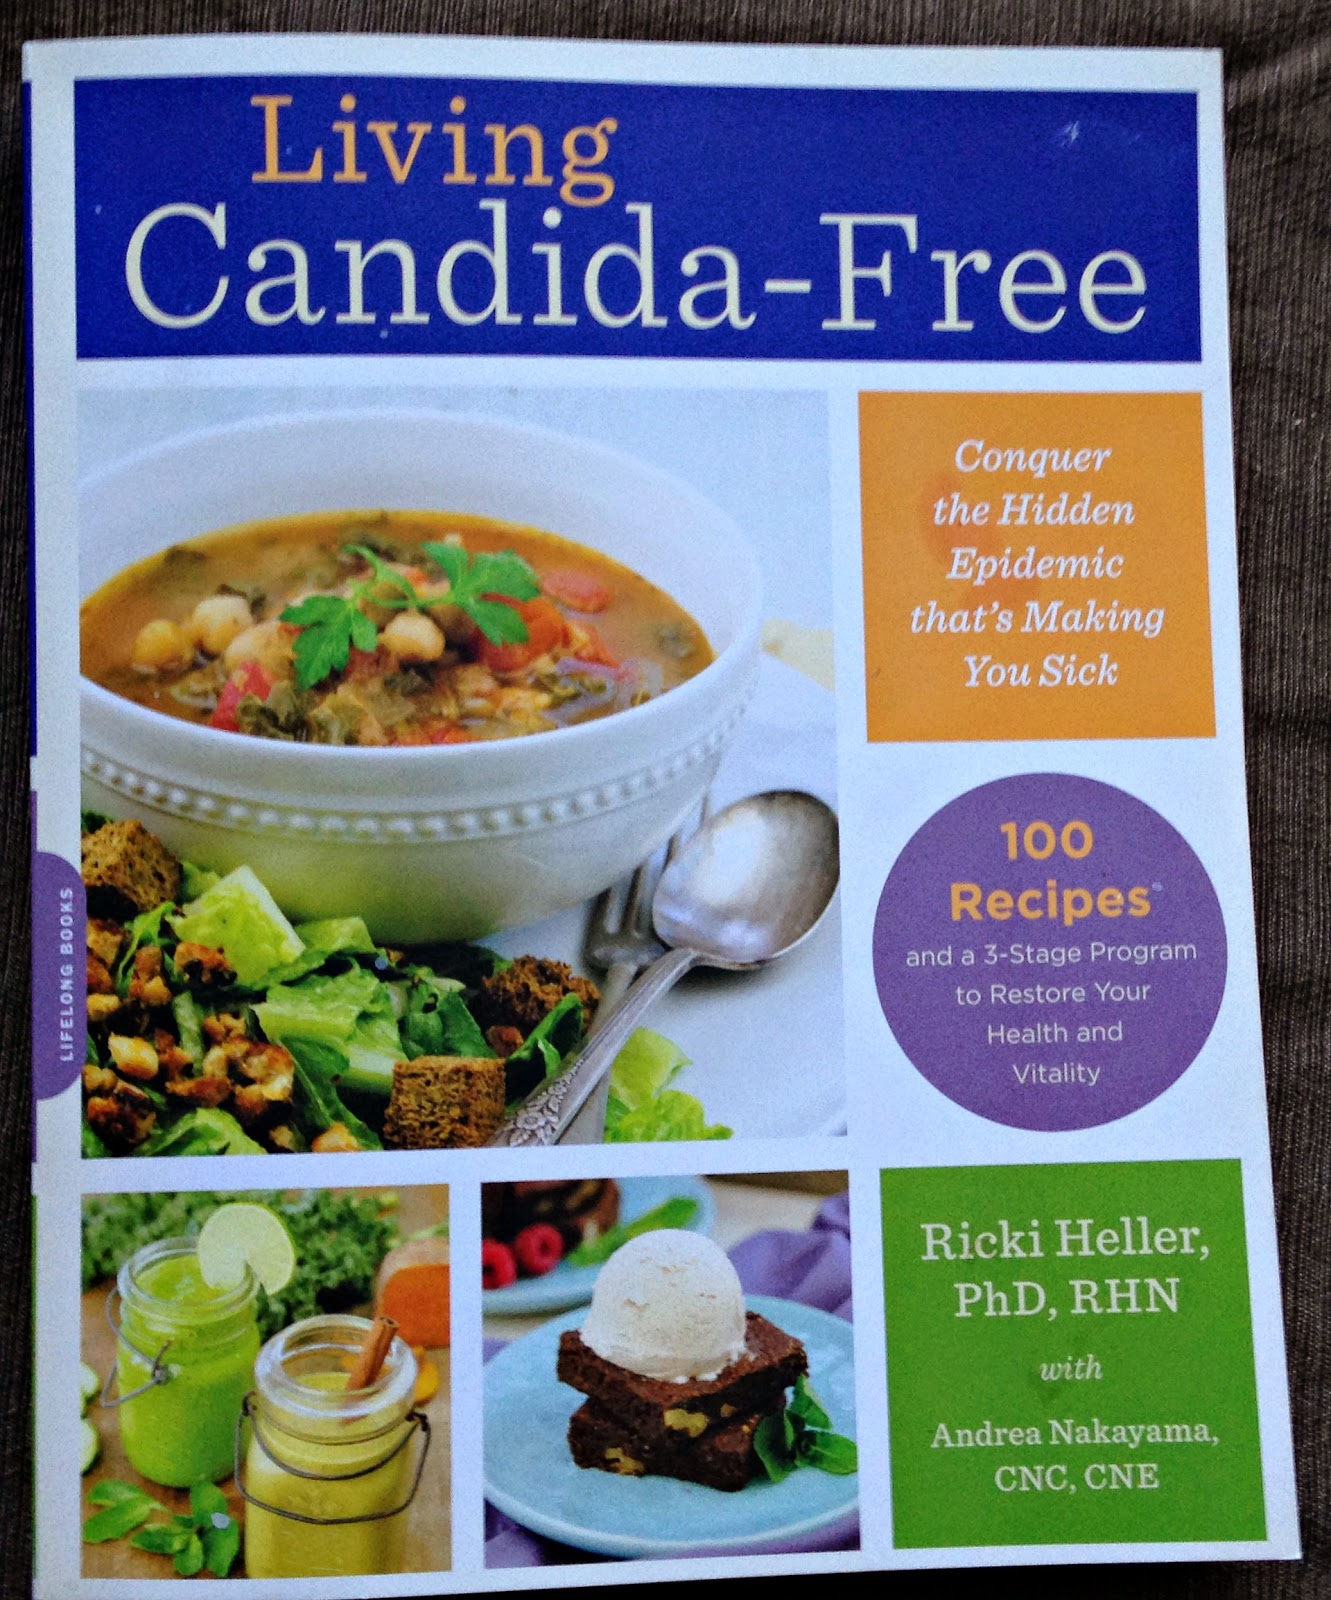 Recipe For Chard In Addition To Chickpea Soup In Addition To A Review Of Ricki Heller's Living Candida-Free